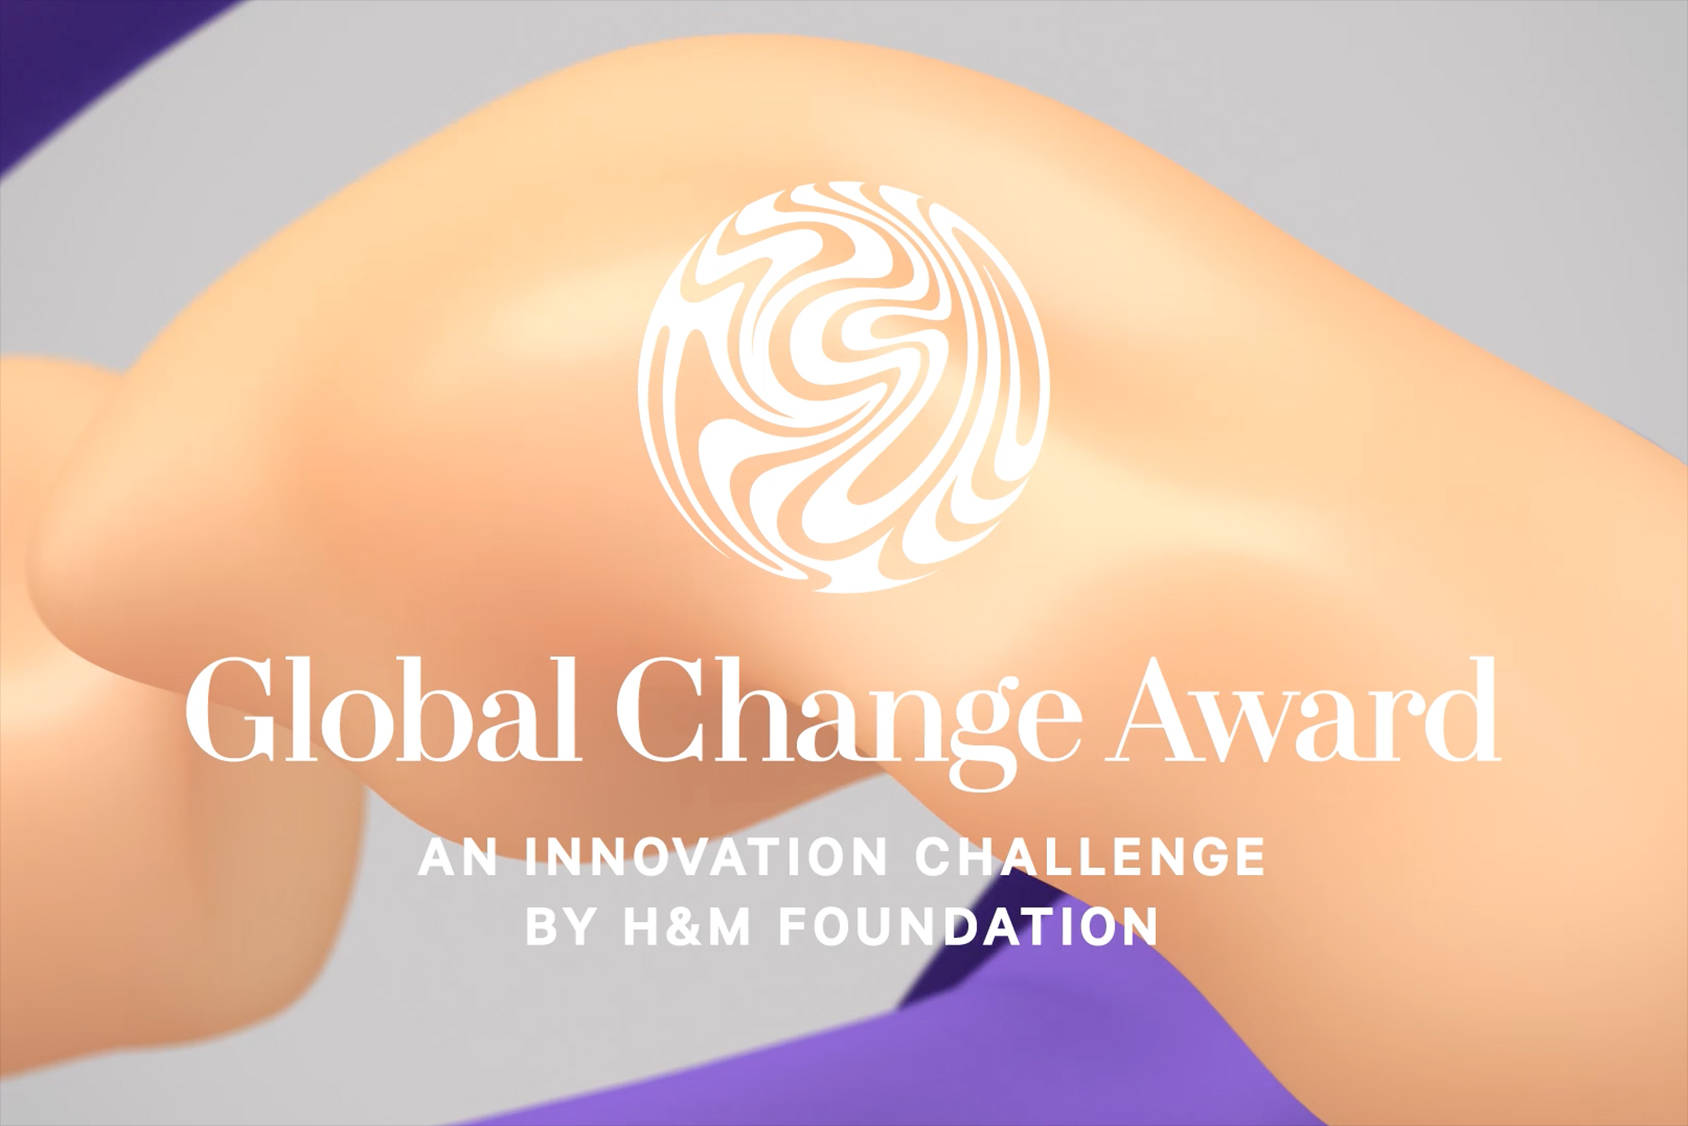 MARB4-17-TL-Inside-HM-Global-Change-Award